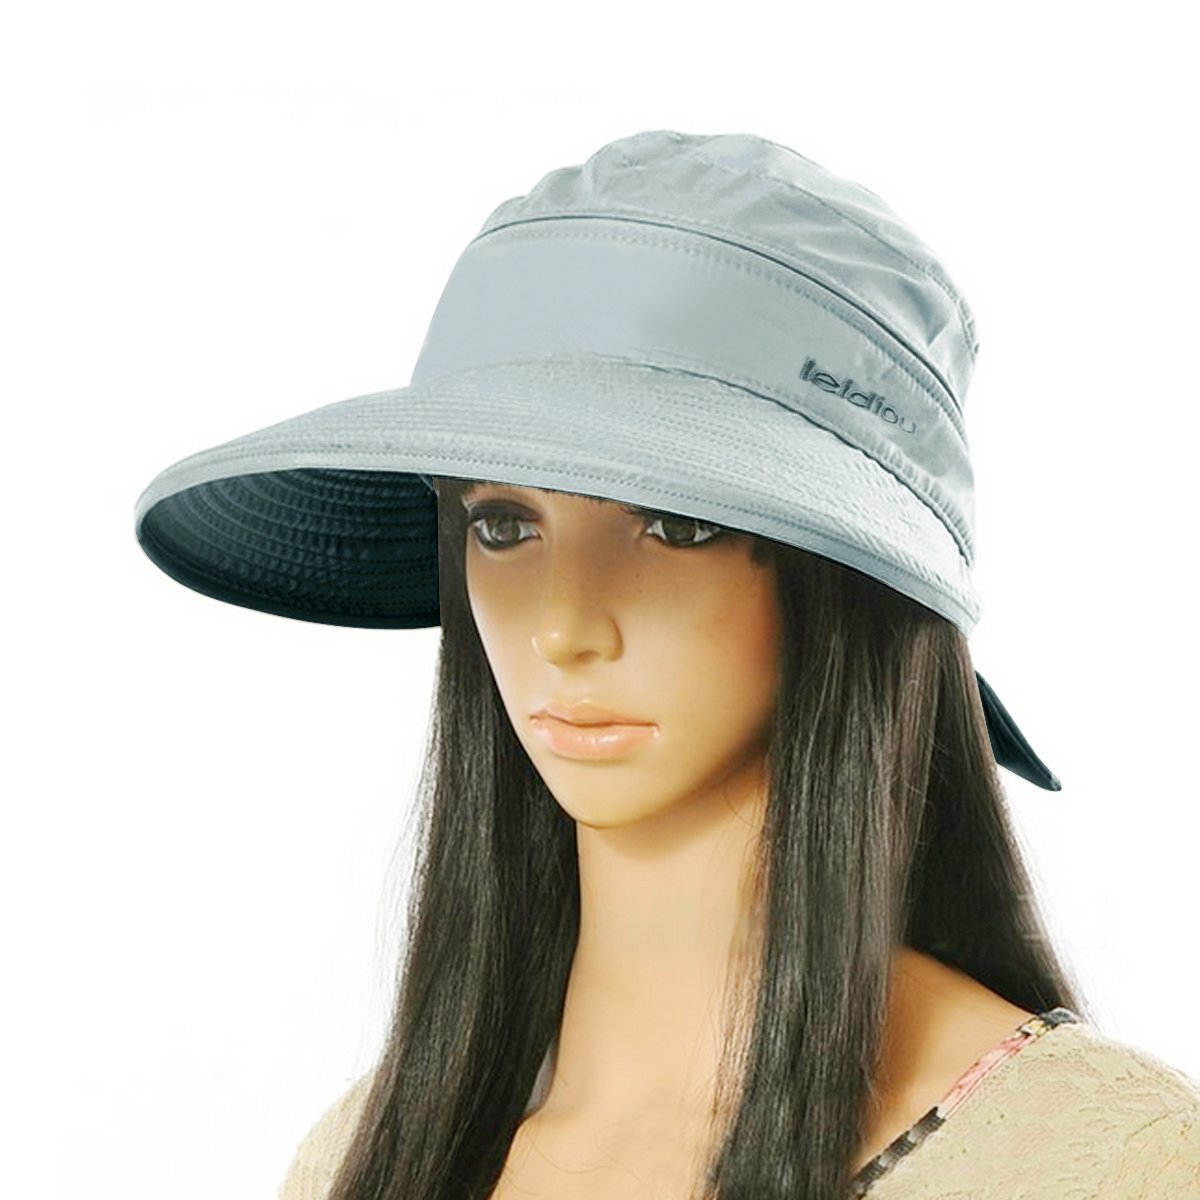 Amazon.com  Aisa Women Bowknot Sun Hat Wide Large Brim Visor Hat Cap Summer  Beach Hat Color Grey  Sports   Outdoors d54e2853813